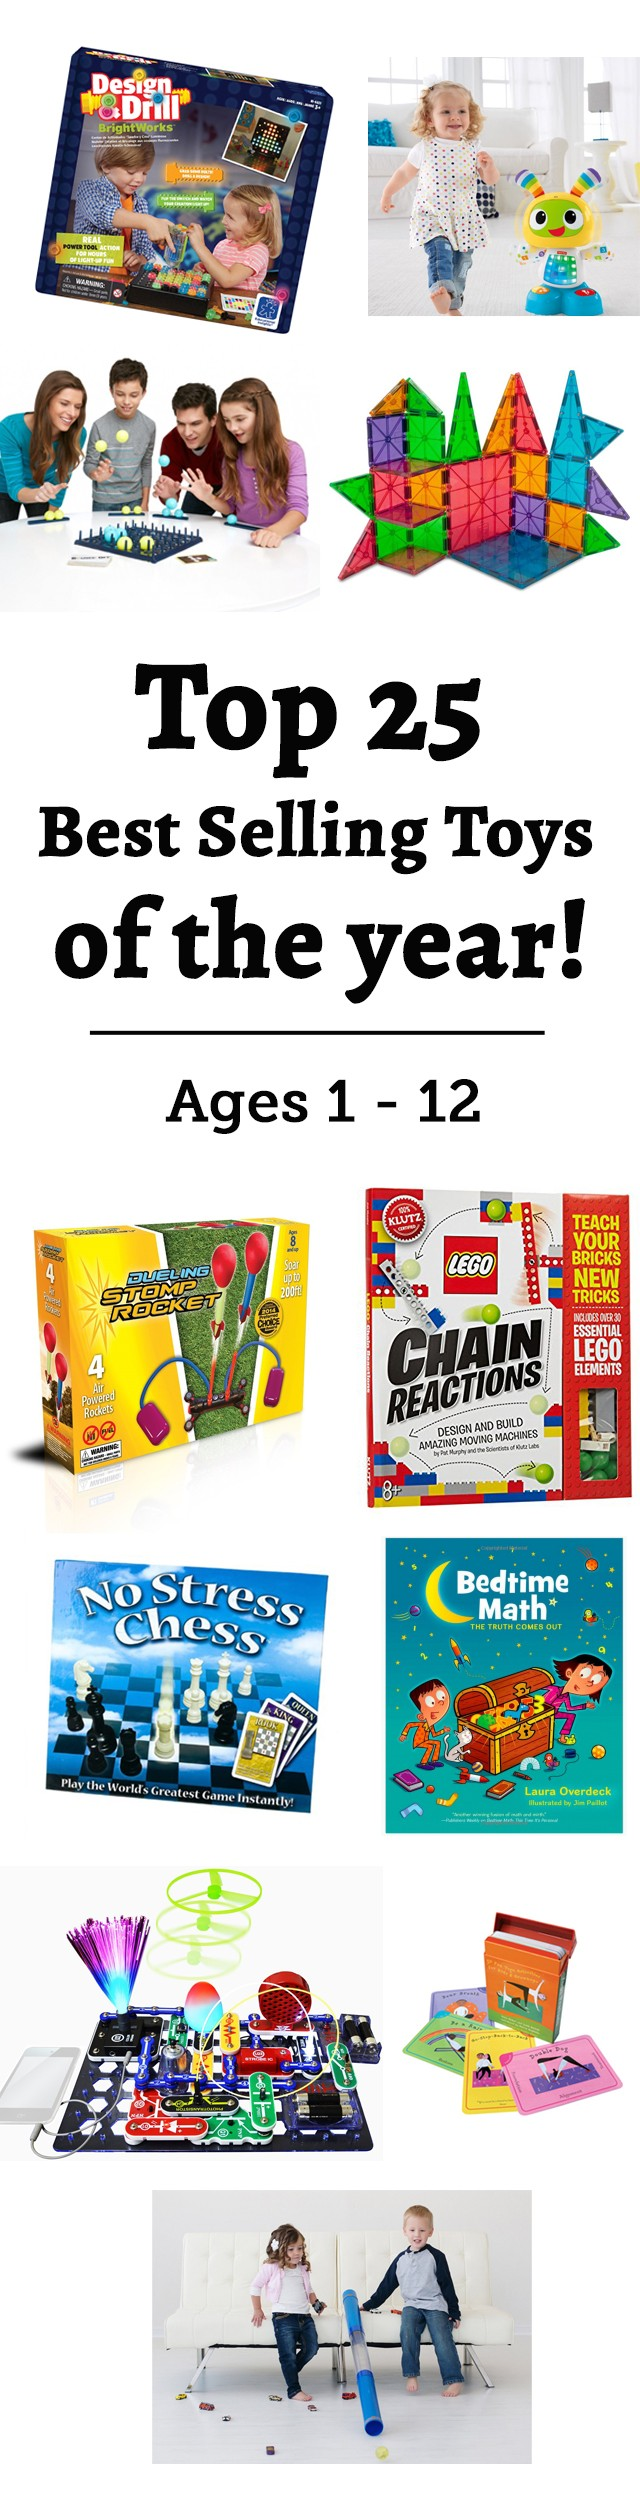 Best Selling Toys of 2015: The top toys for ages 1 to 12 from our famous gift guides